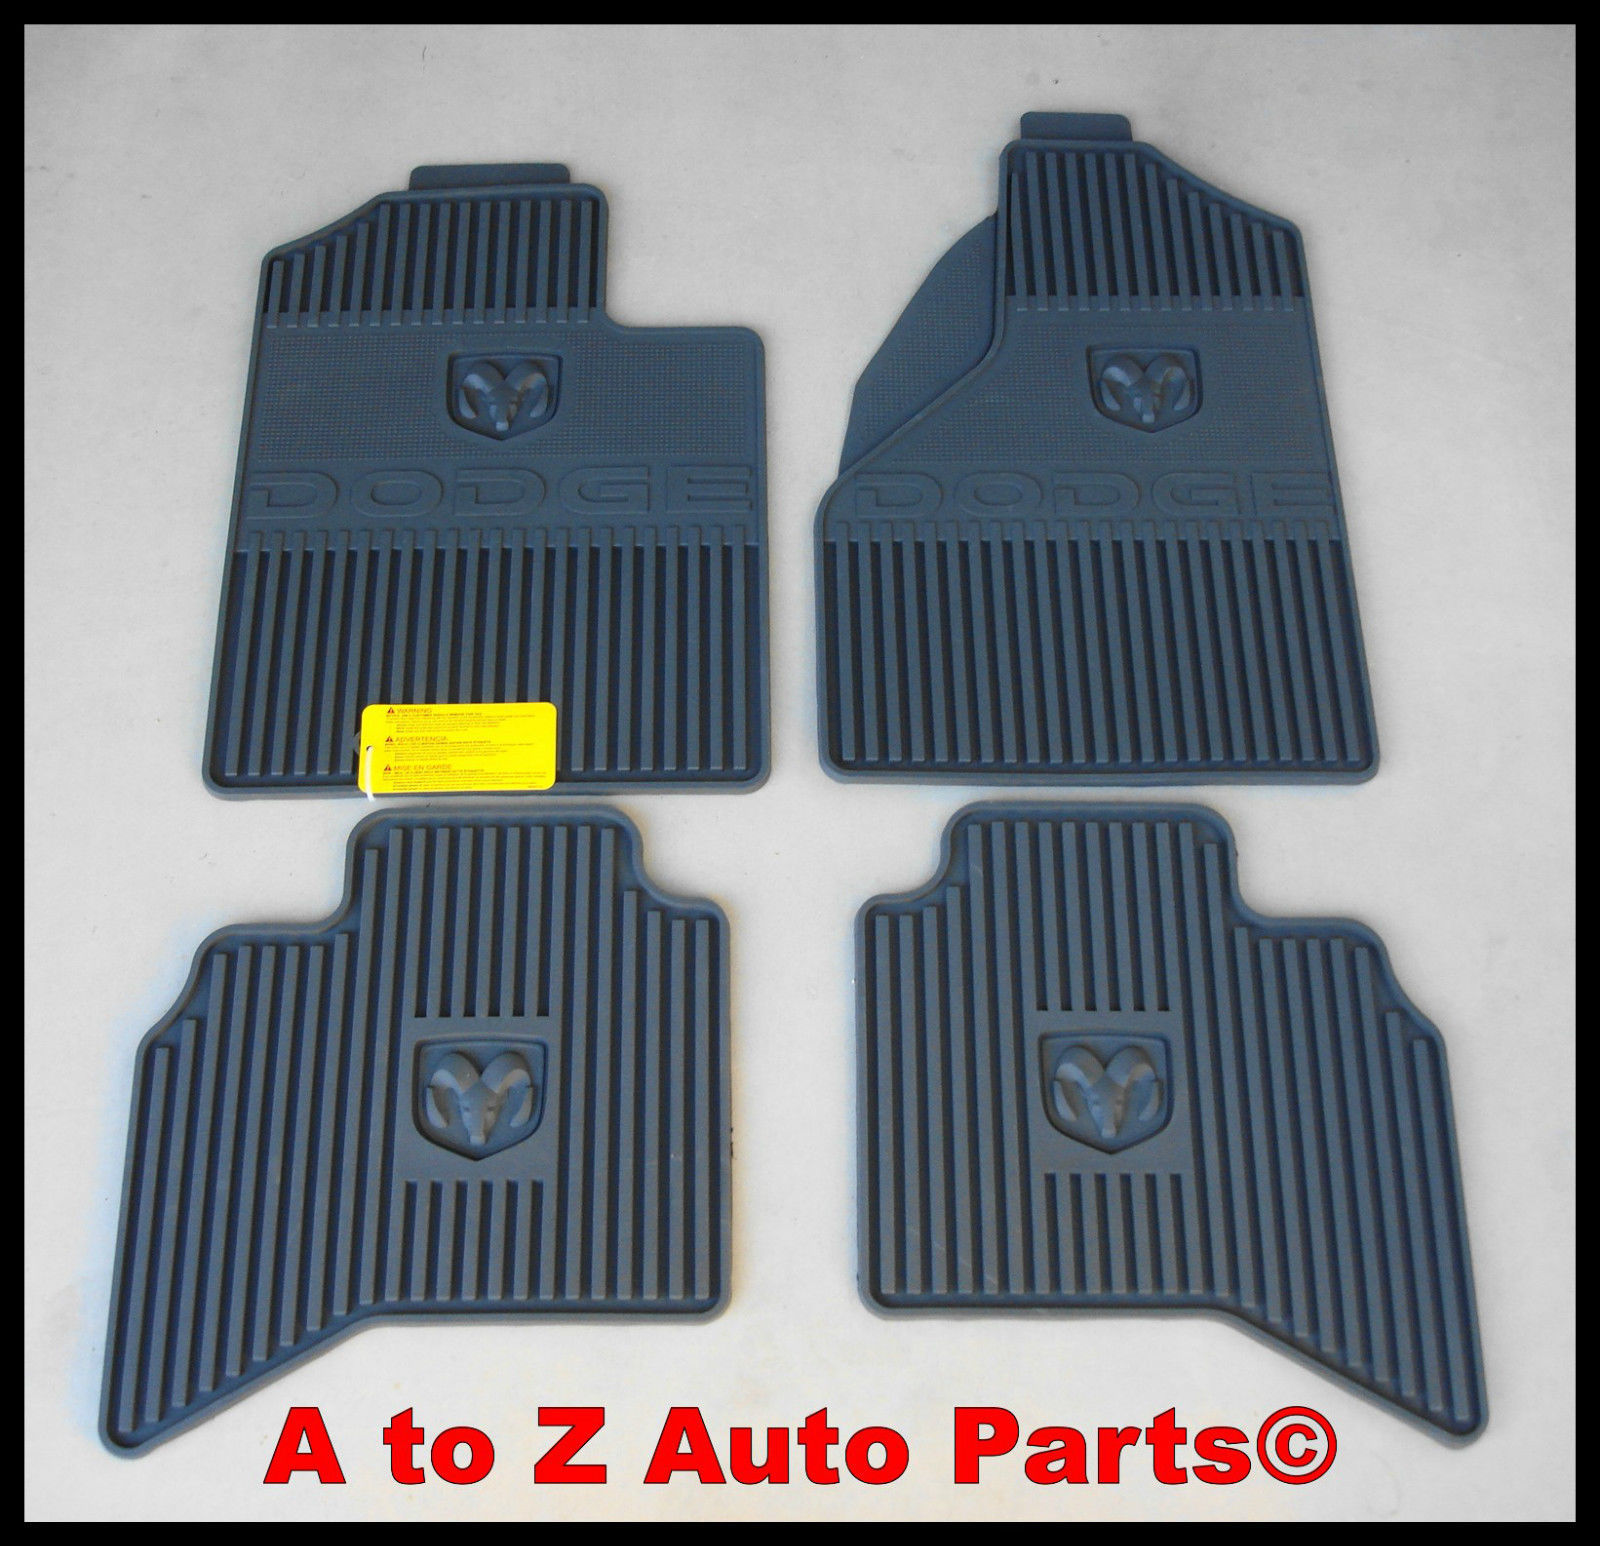 NEW 2006-2008 Dodge Ram 1500-3500 Set of Slush Style RUBBER Floor Mats,OEM Mopar